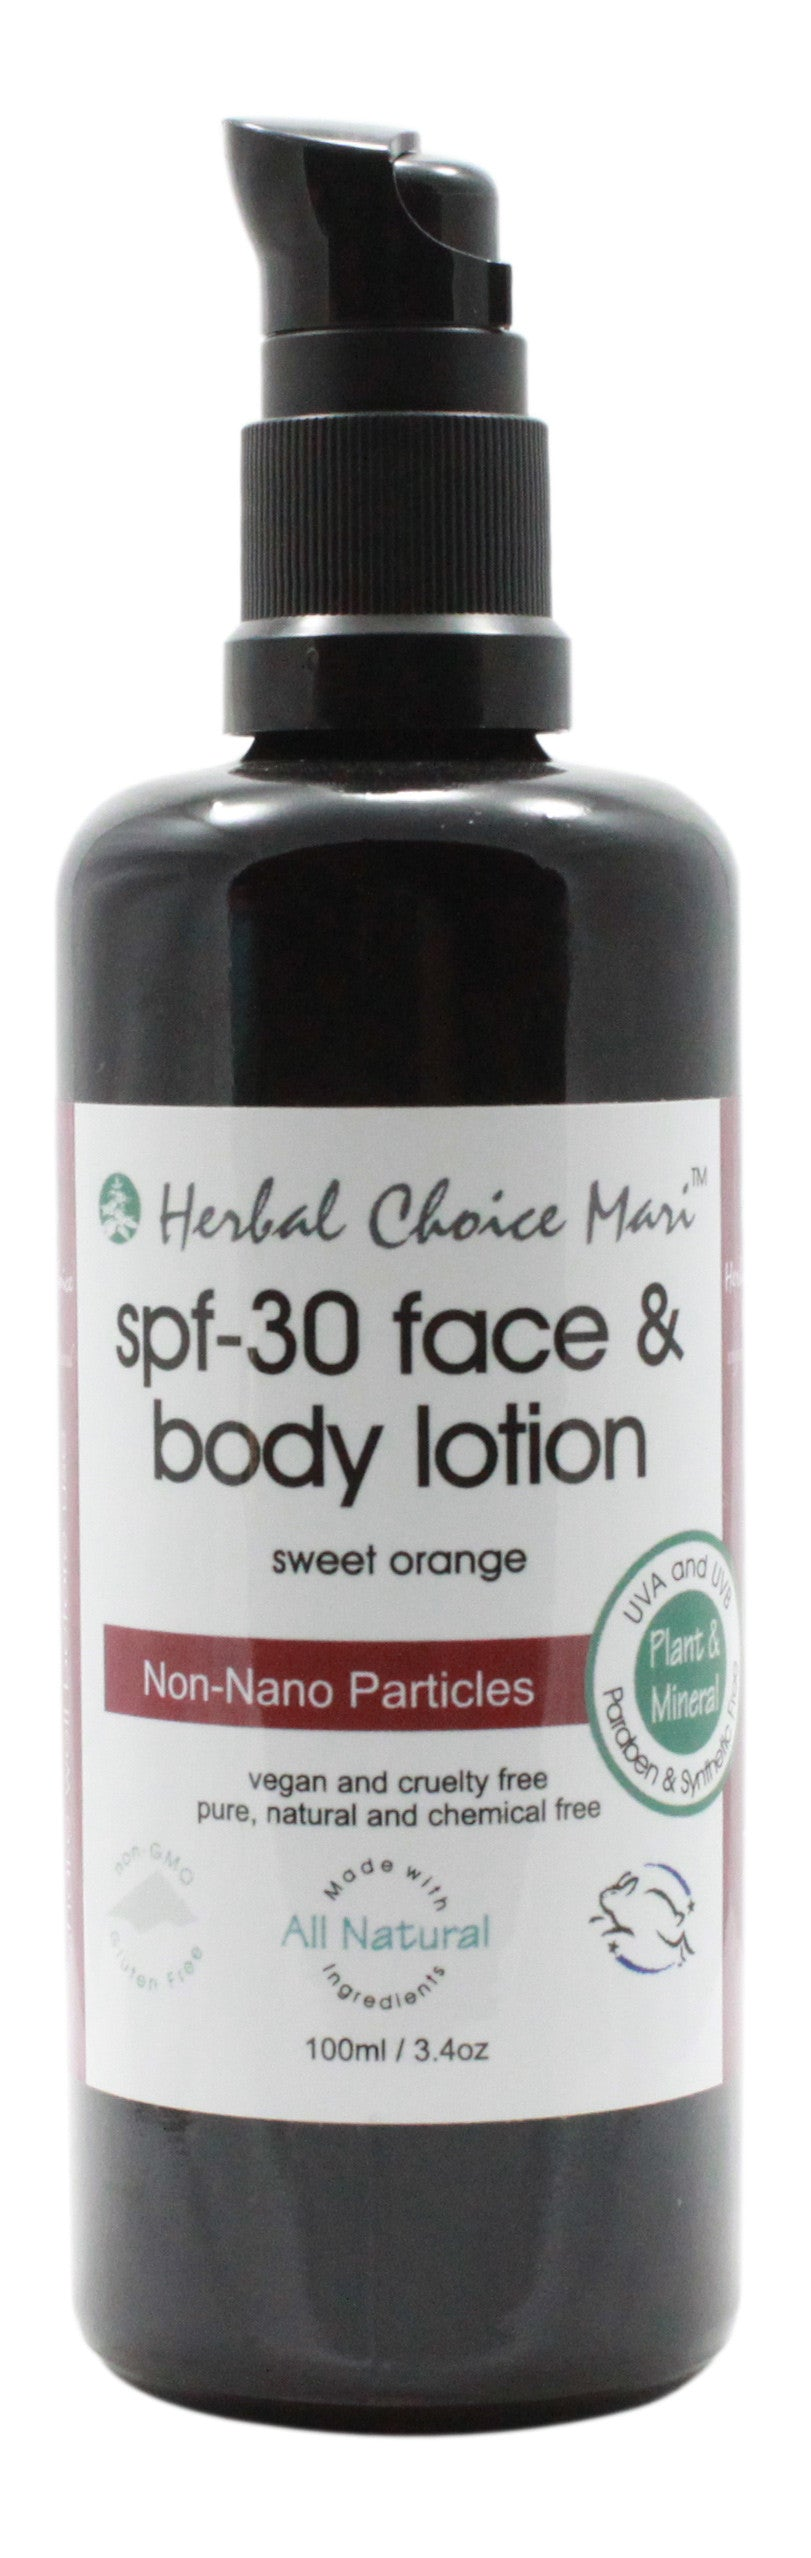 SPF- 30 Face & Body Lotion - Sweet Orange - 3.4 oz - Front